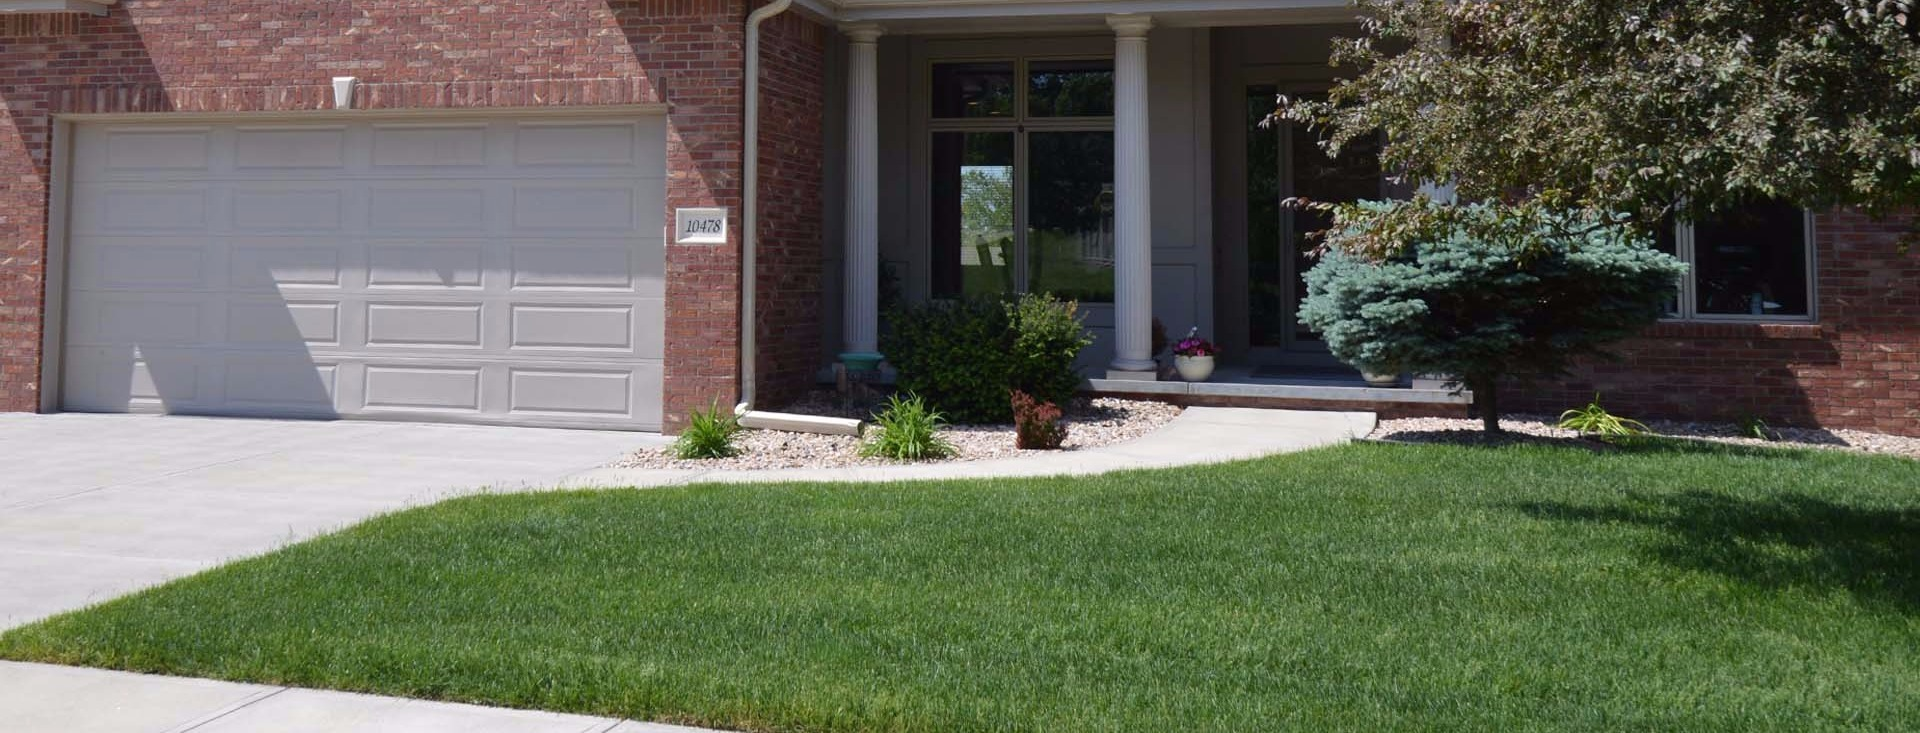 Lawn care services, fertilizing, grub control, aeration and overseeding